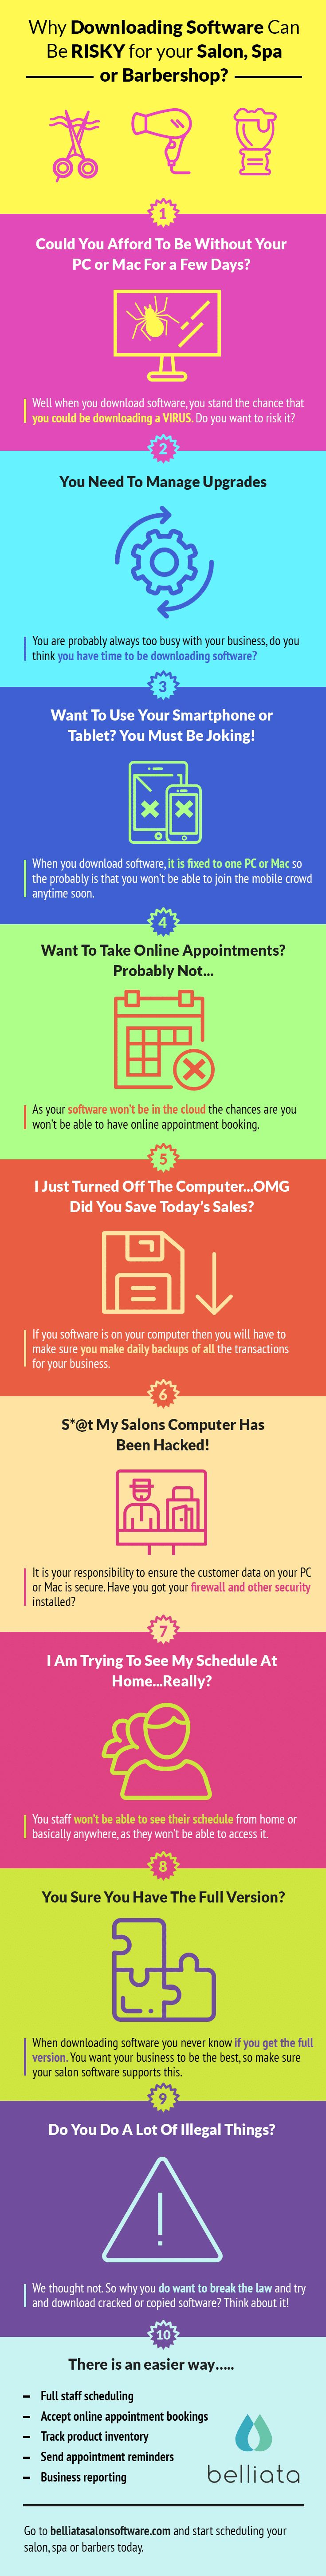 Looking for a salon software free download?   https://belliatasalonsoftware.com/free-download  @getbelliata tell you why it is not good for your salon, spa or barber shop.  #hairsalon #barbershop #salonsoftware #nailsalon